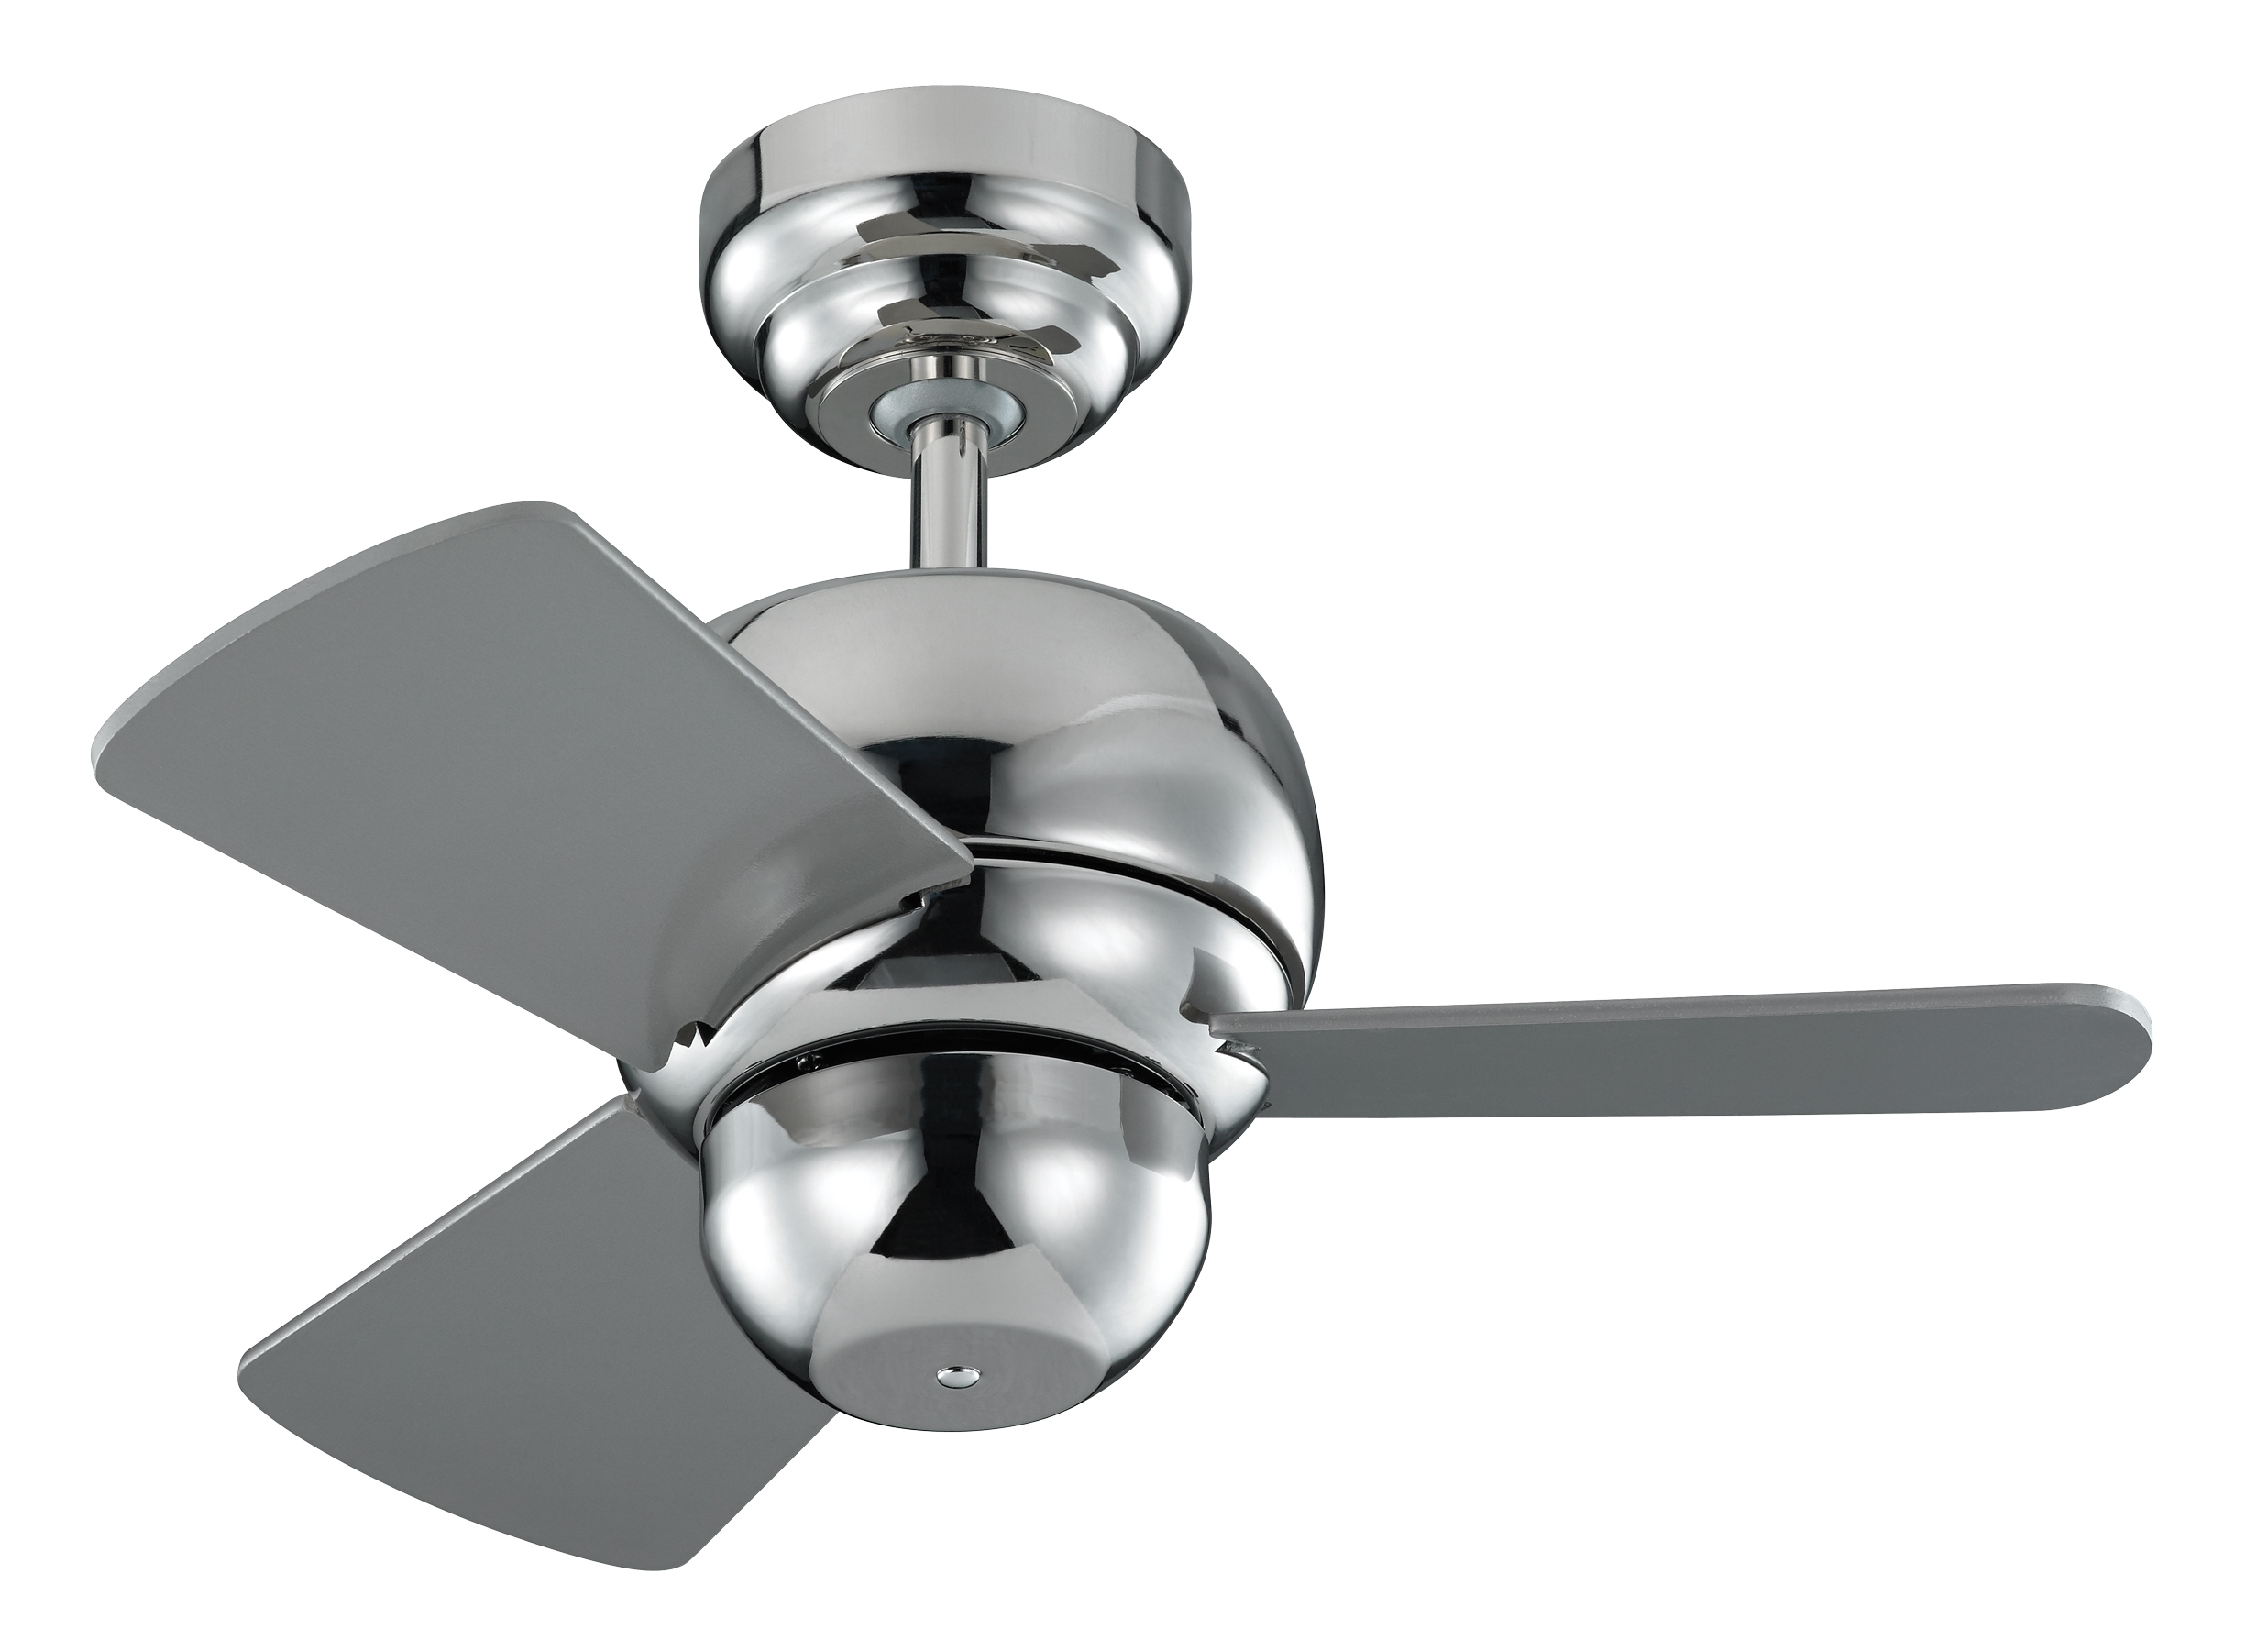 Best And Newest 20 Inch Outdoor Ceiling Fans With Light With Regard To Ceiling Fan: Recomended Mini Ceiling Fan For Home Mini Ceiling Fan (Gallery 19 of 20)